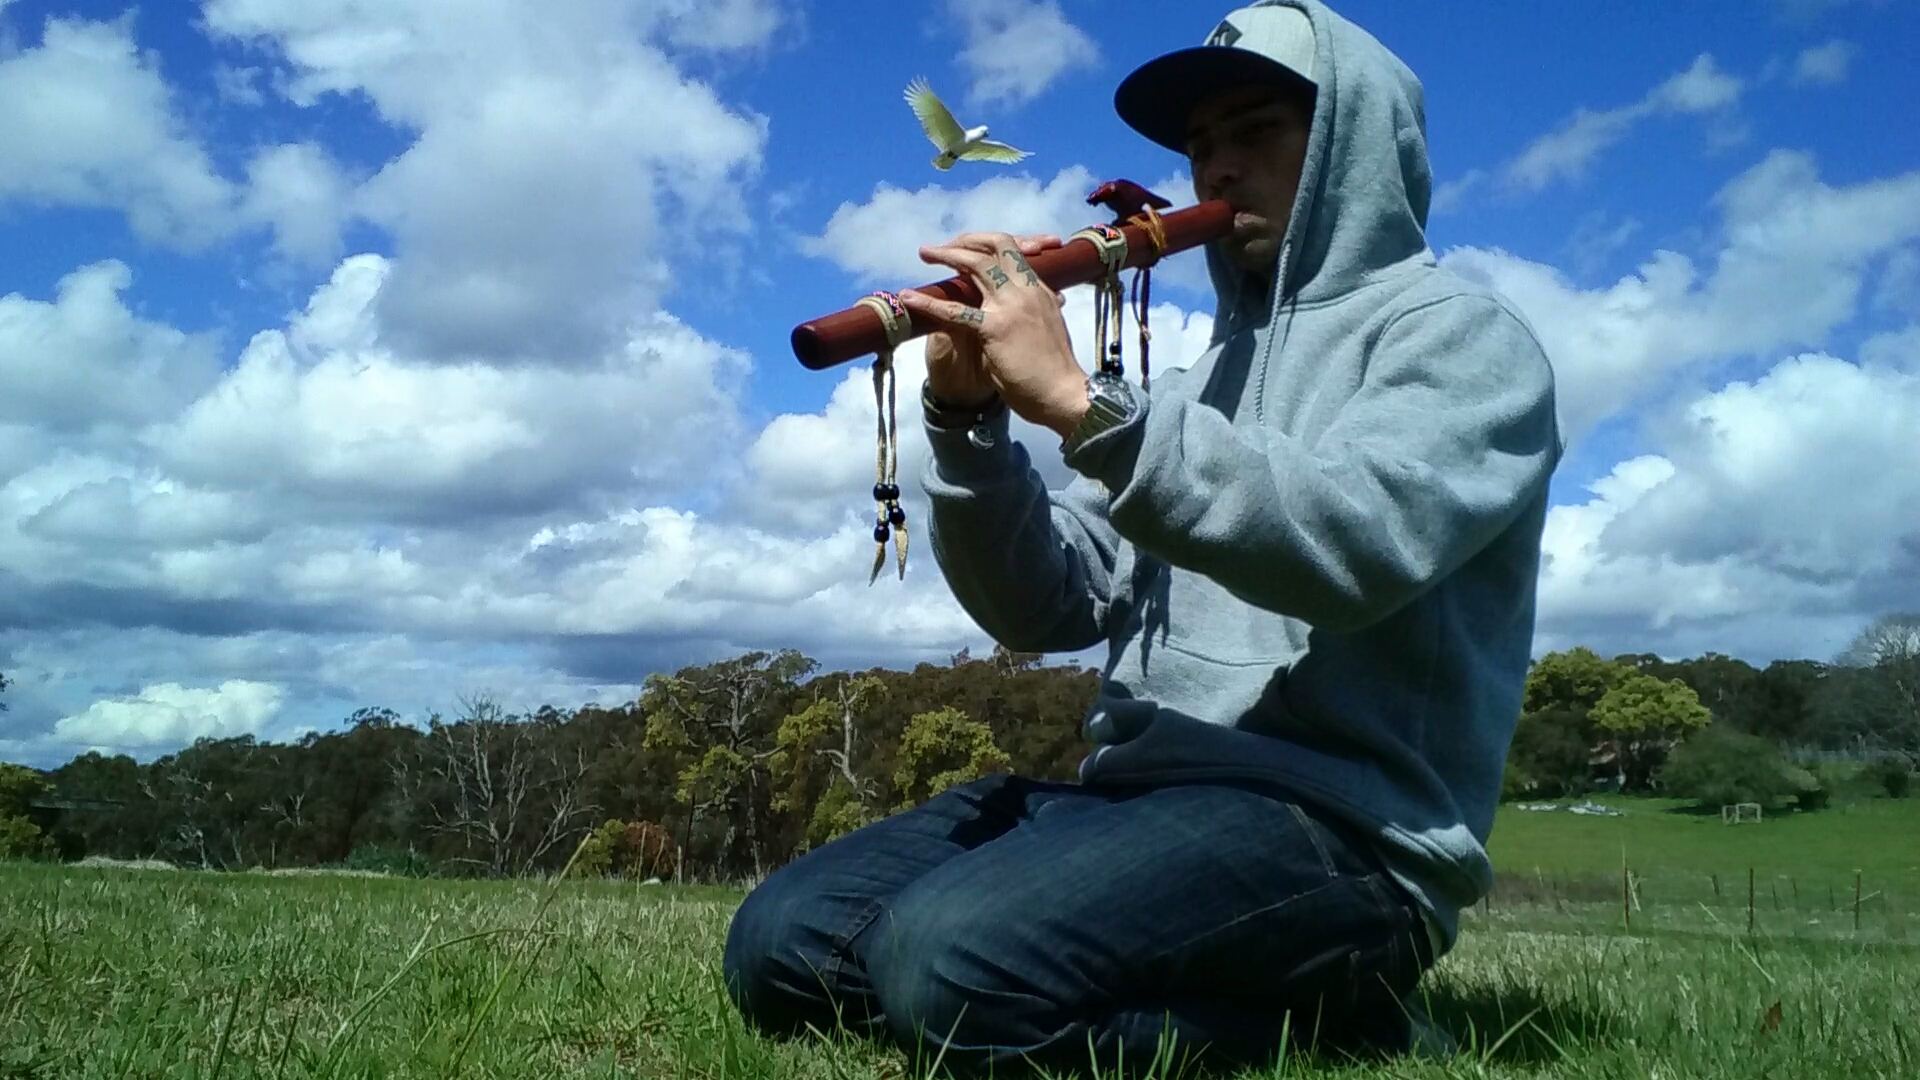 A cockatoo flying overheard as I spend some time in nature with my native-american flute.